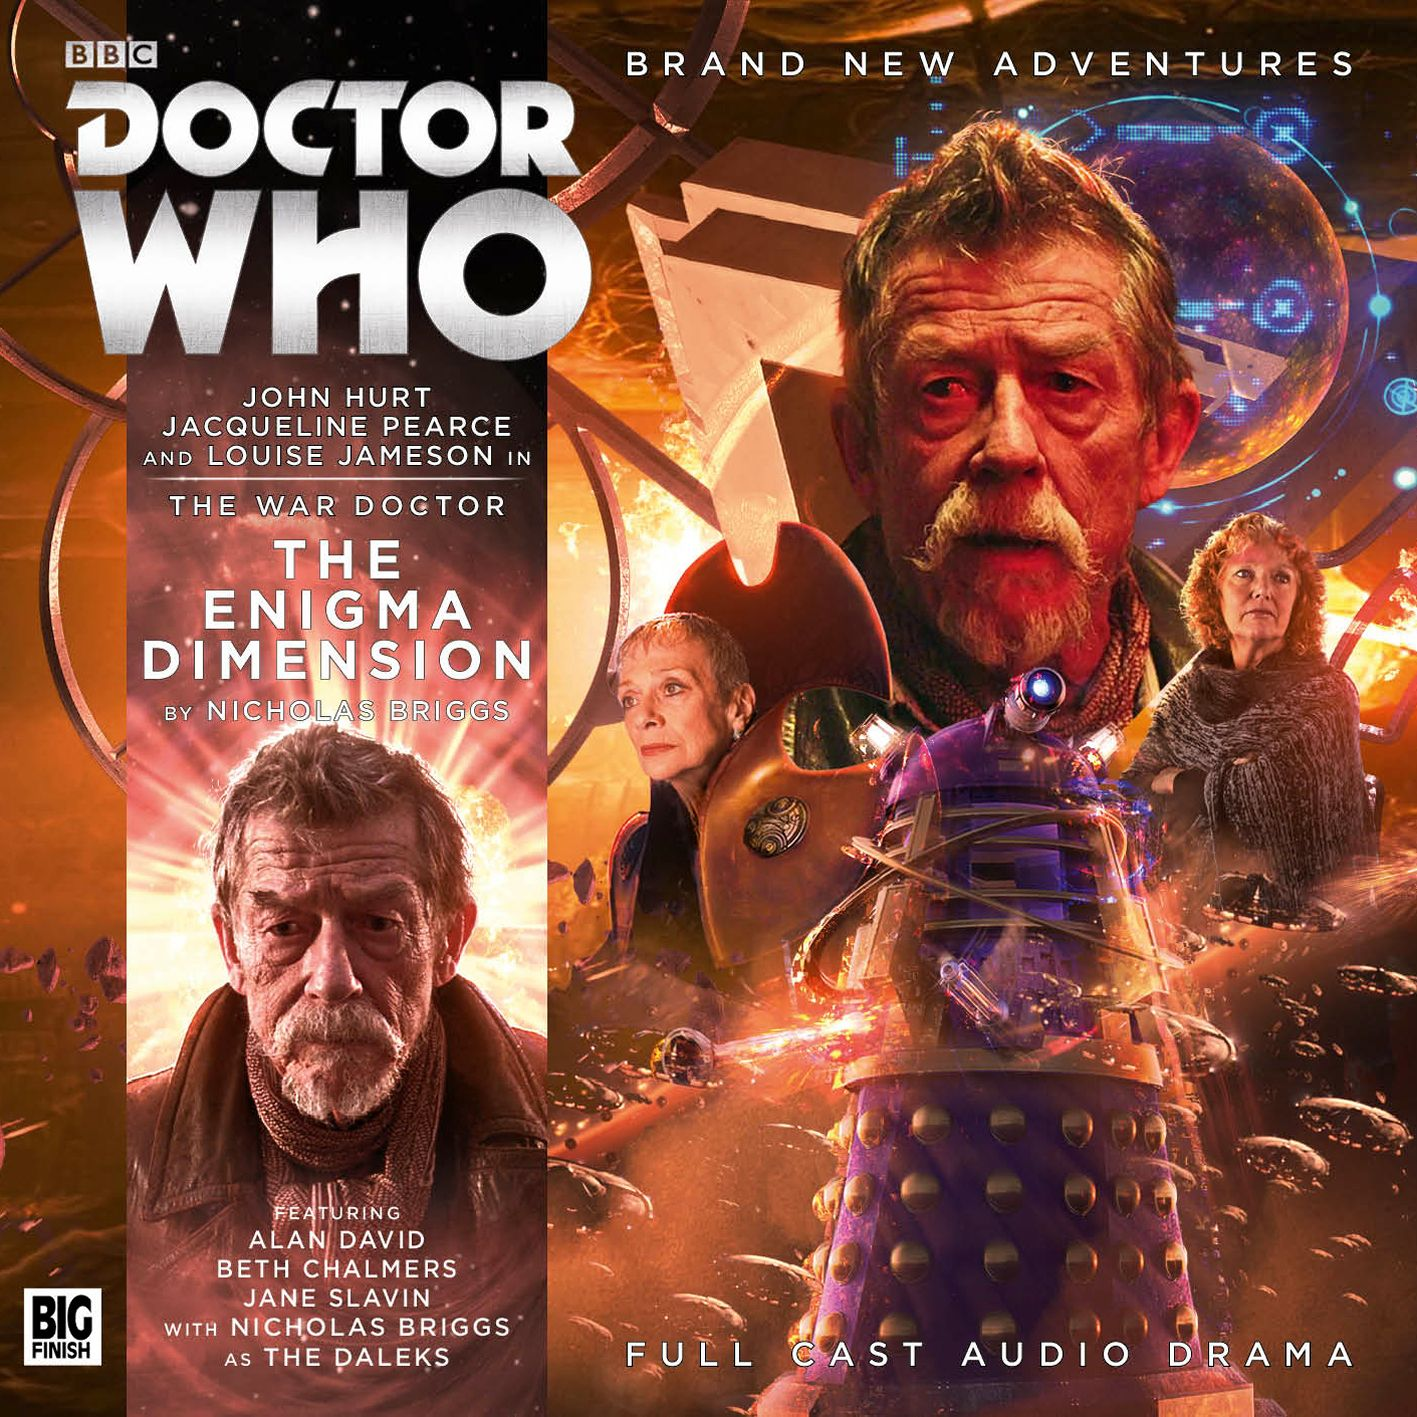 The War Doctor 4.3: The Enigma Dimension